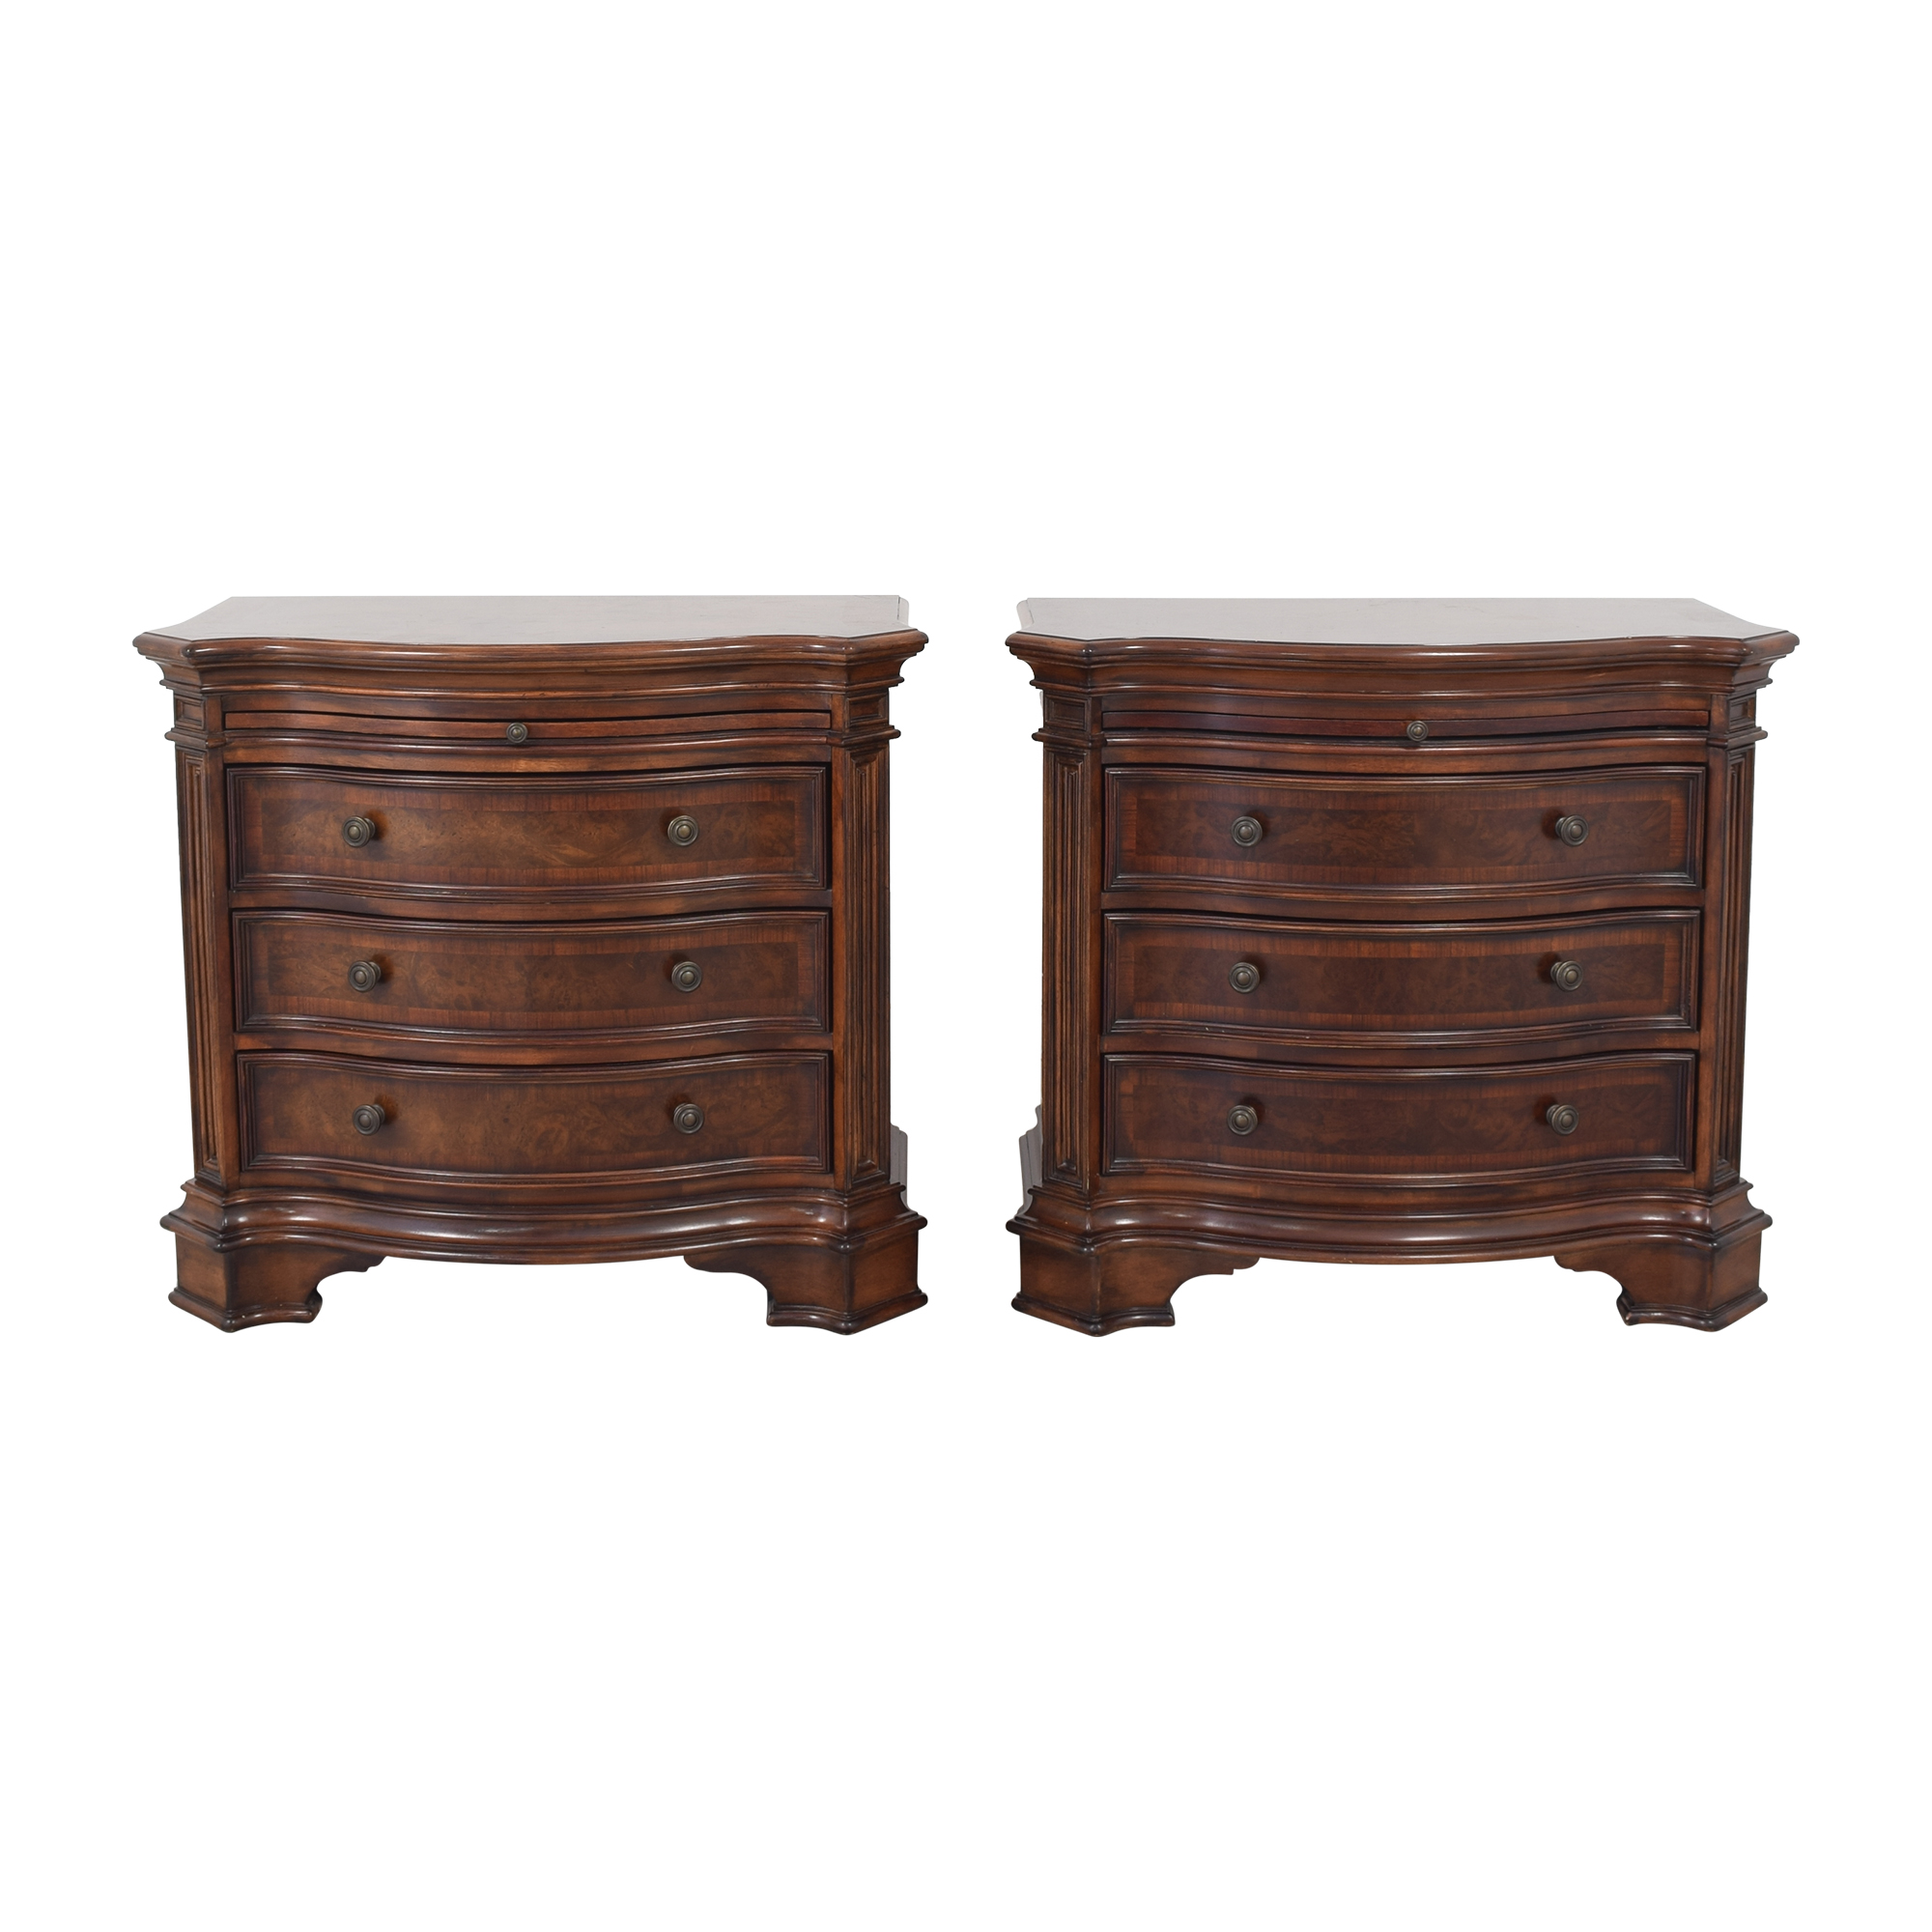 Broyhill Furniture Broyhill Bedside Tables price